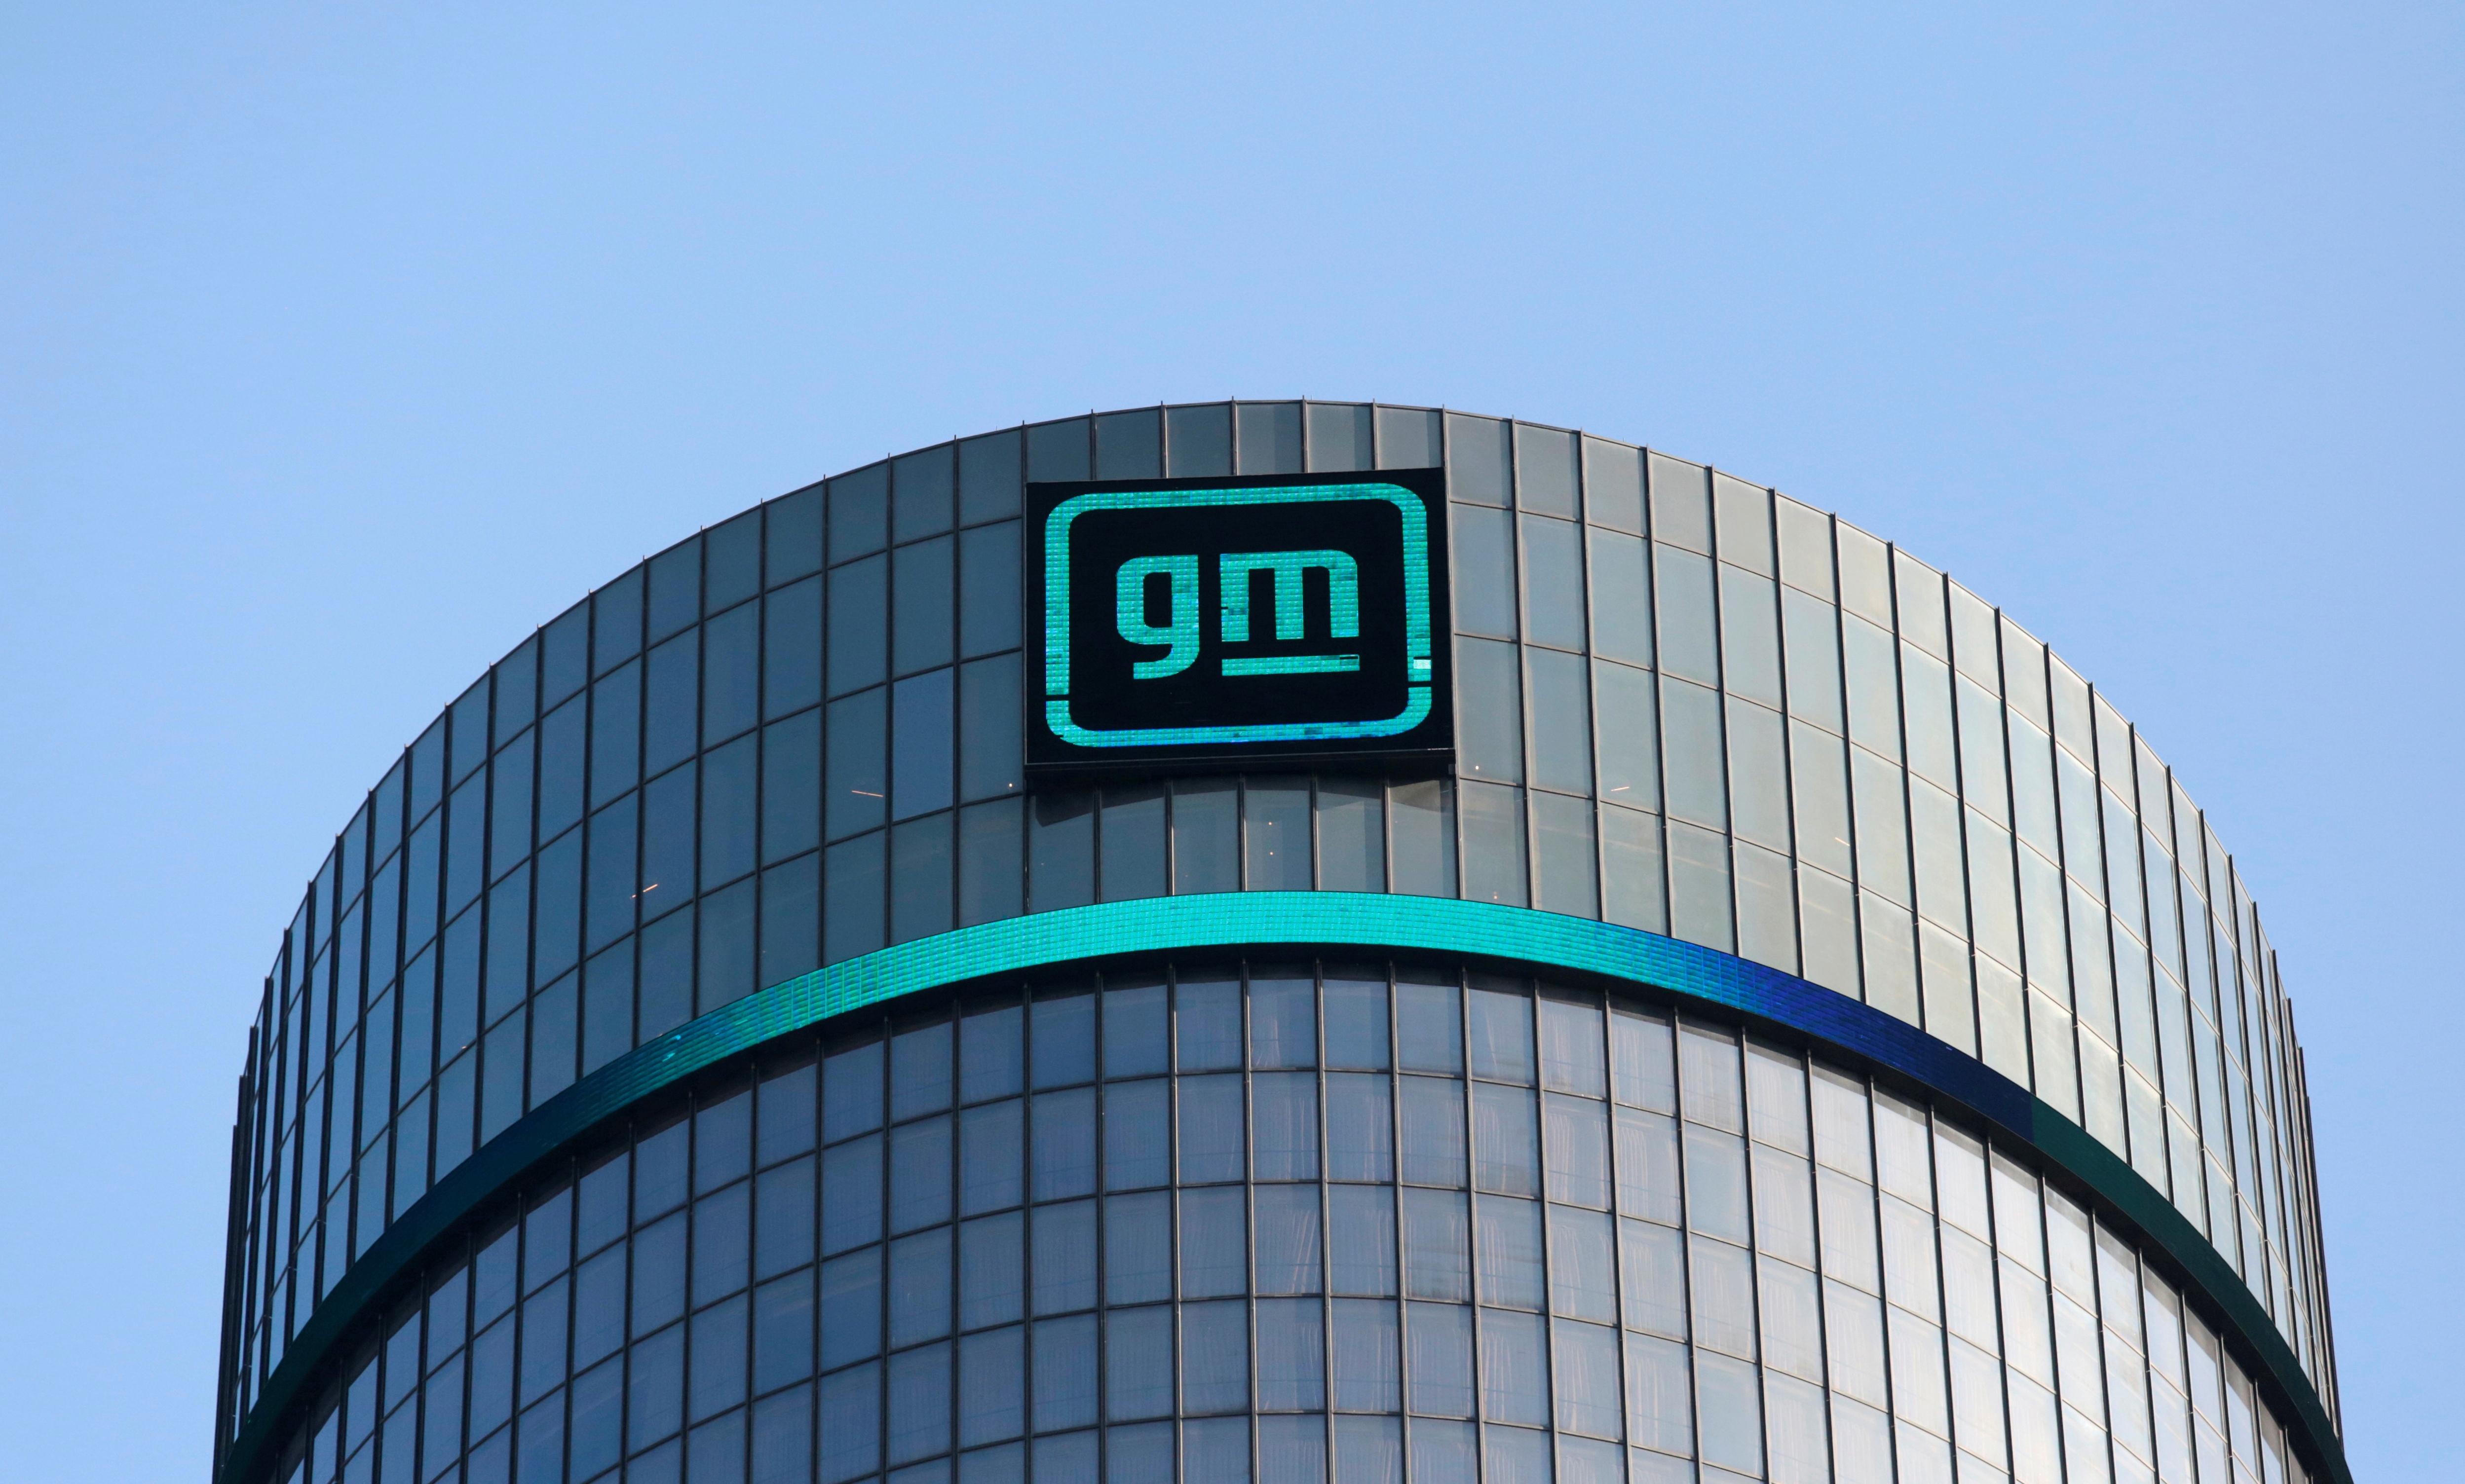 The new GM logo is seen on the facade of the General Motors headquarters in Detroit, Michigan, U.S., March 16, 2021. REUTERS/Rebecca Cook